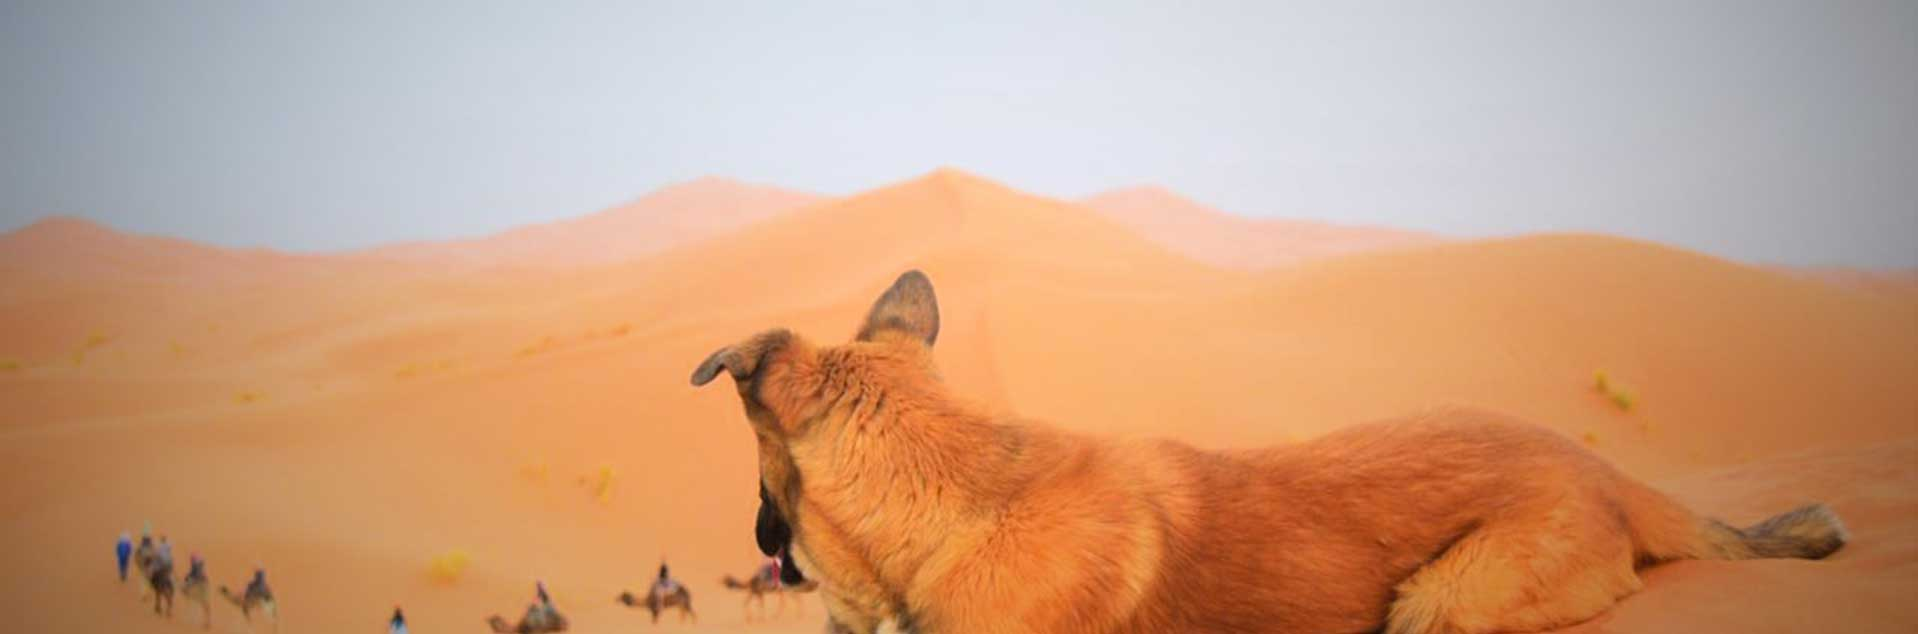 Header photo of a dog in the desert